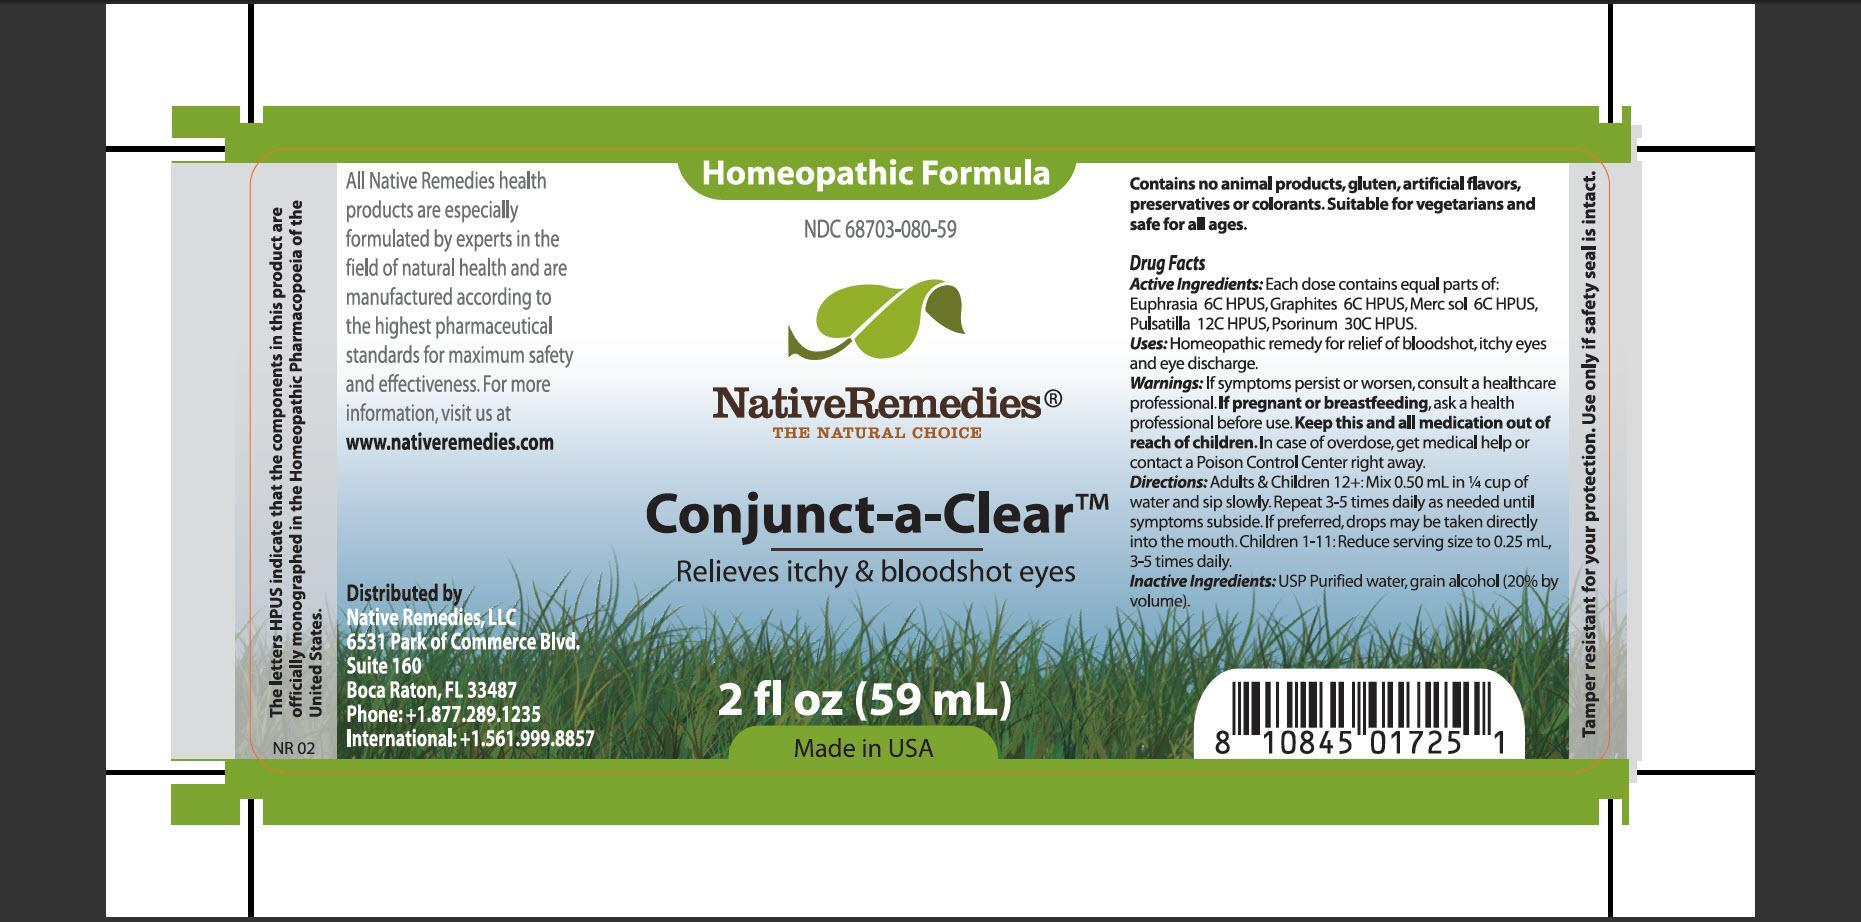 Conjunct-a-clear (Euphrasia, Graphites, Mer Sol, Pulsatilla, Psorinum) Tincture [Native Remedies, Llc]